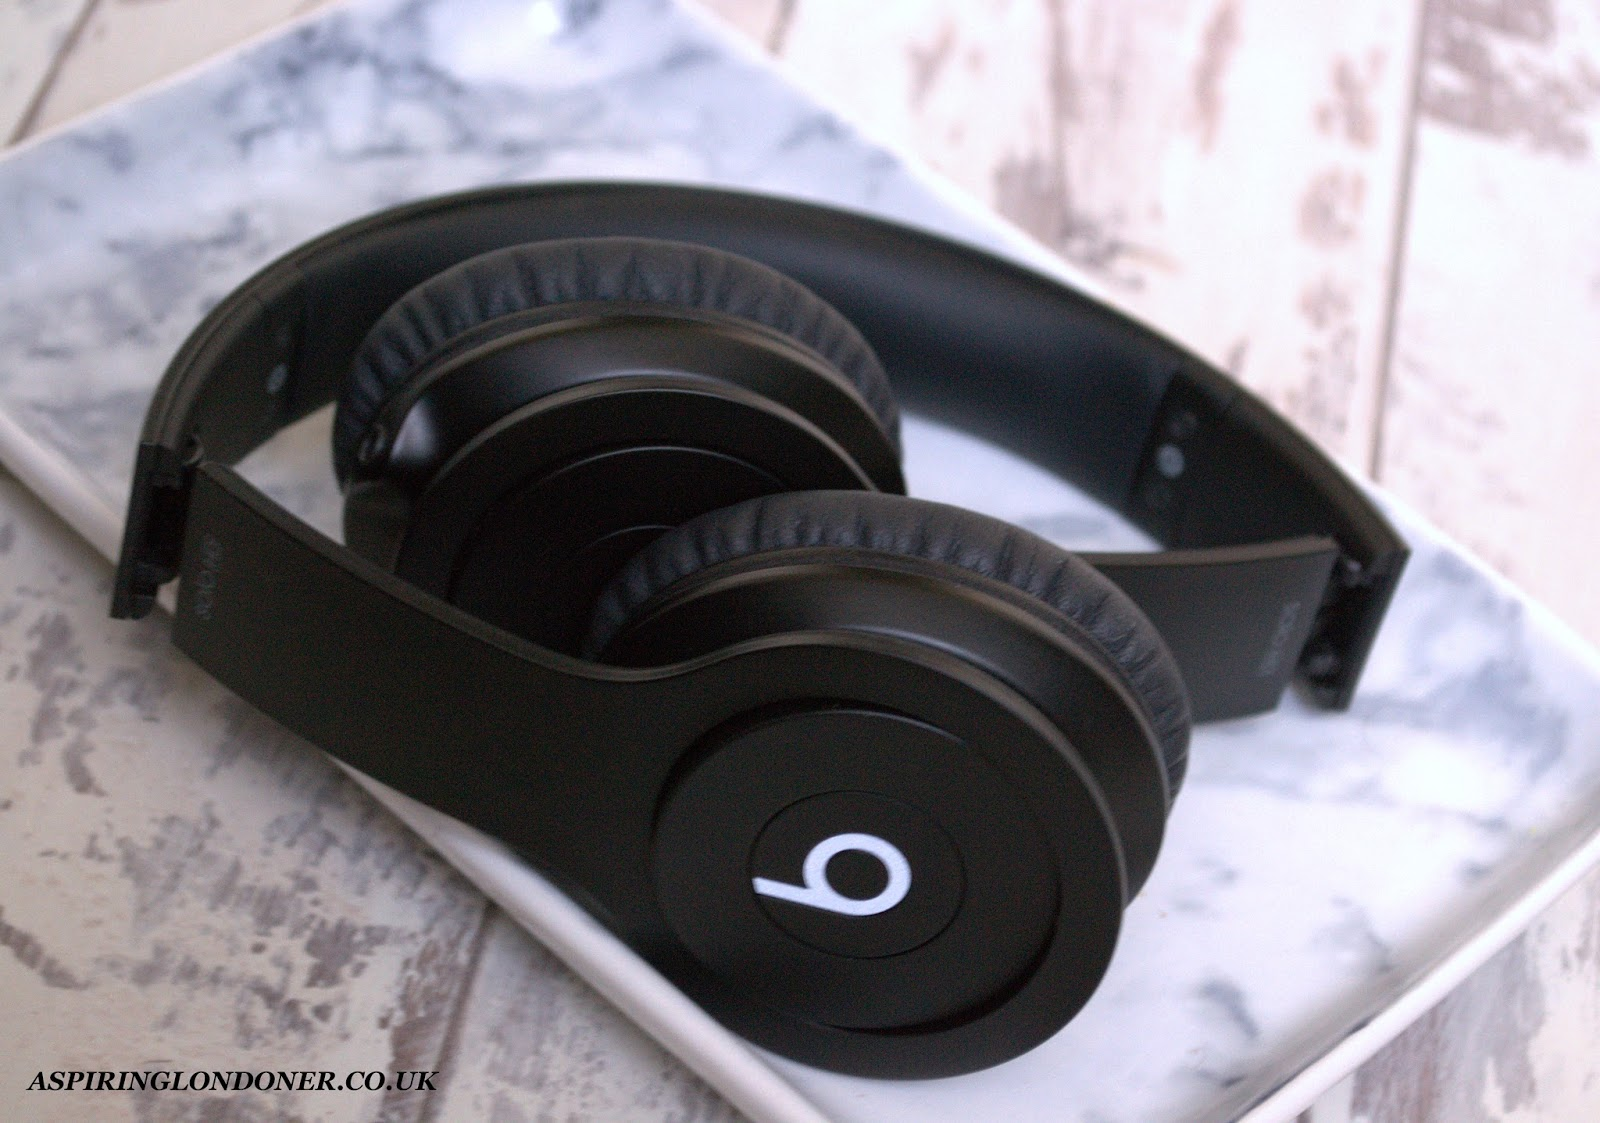 Beats by Dr Dre Headphones Review - Aspiring Londoner